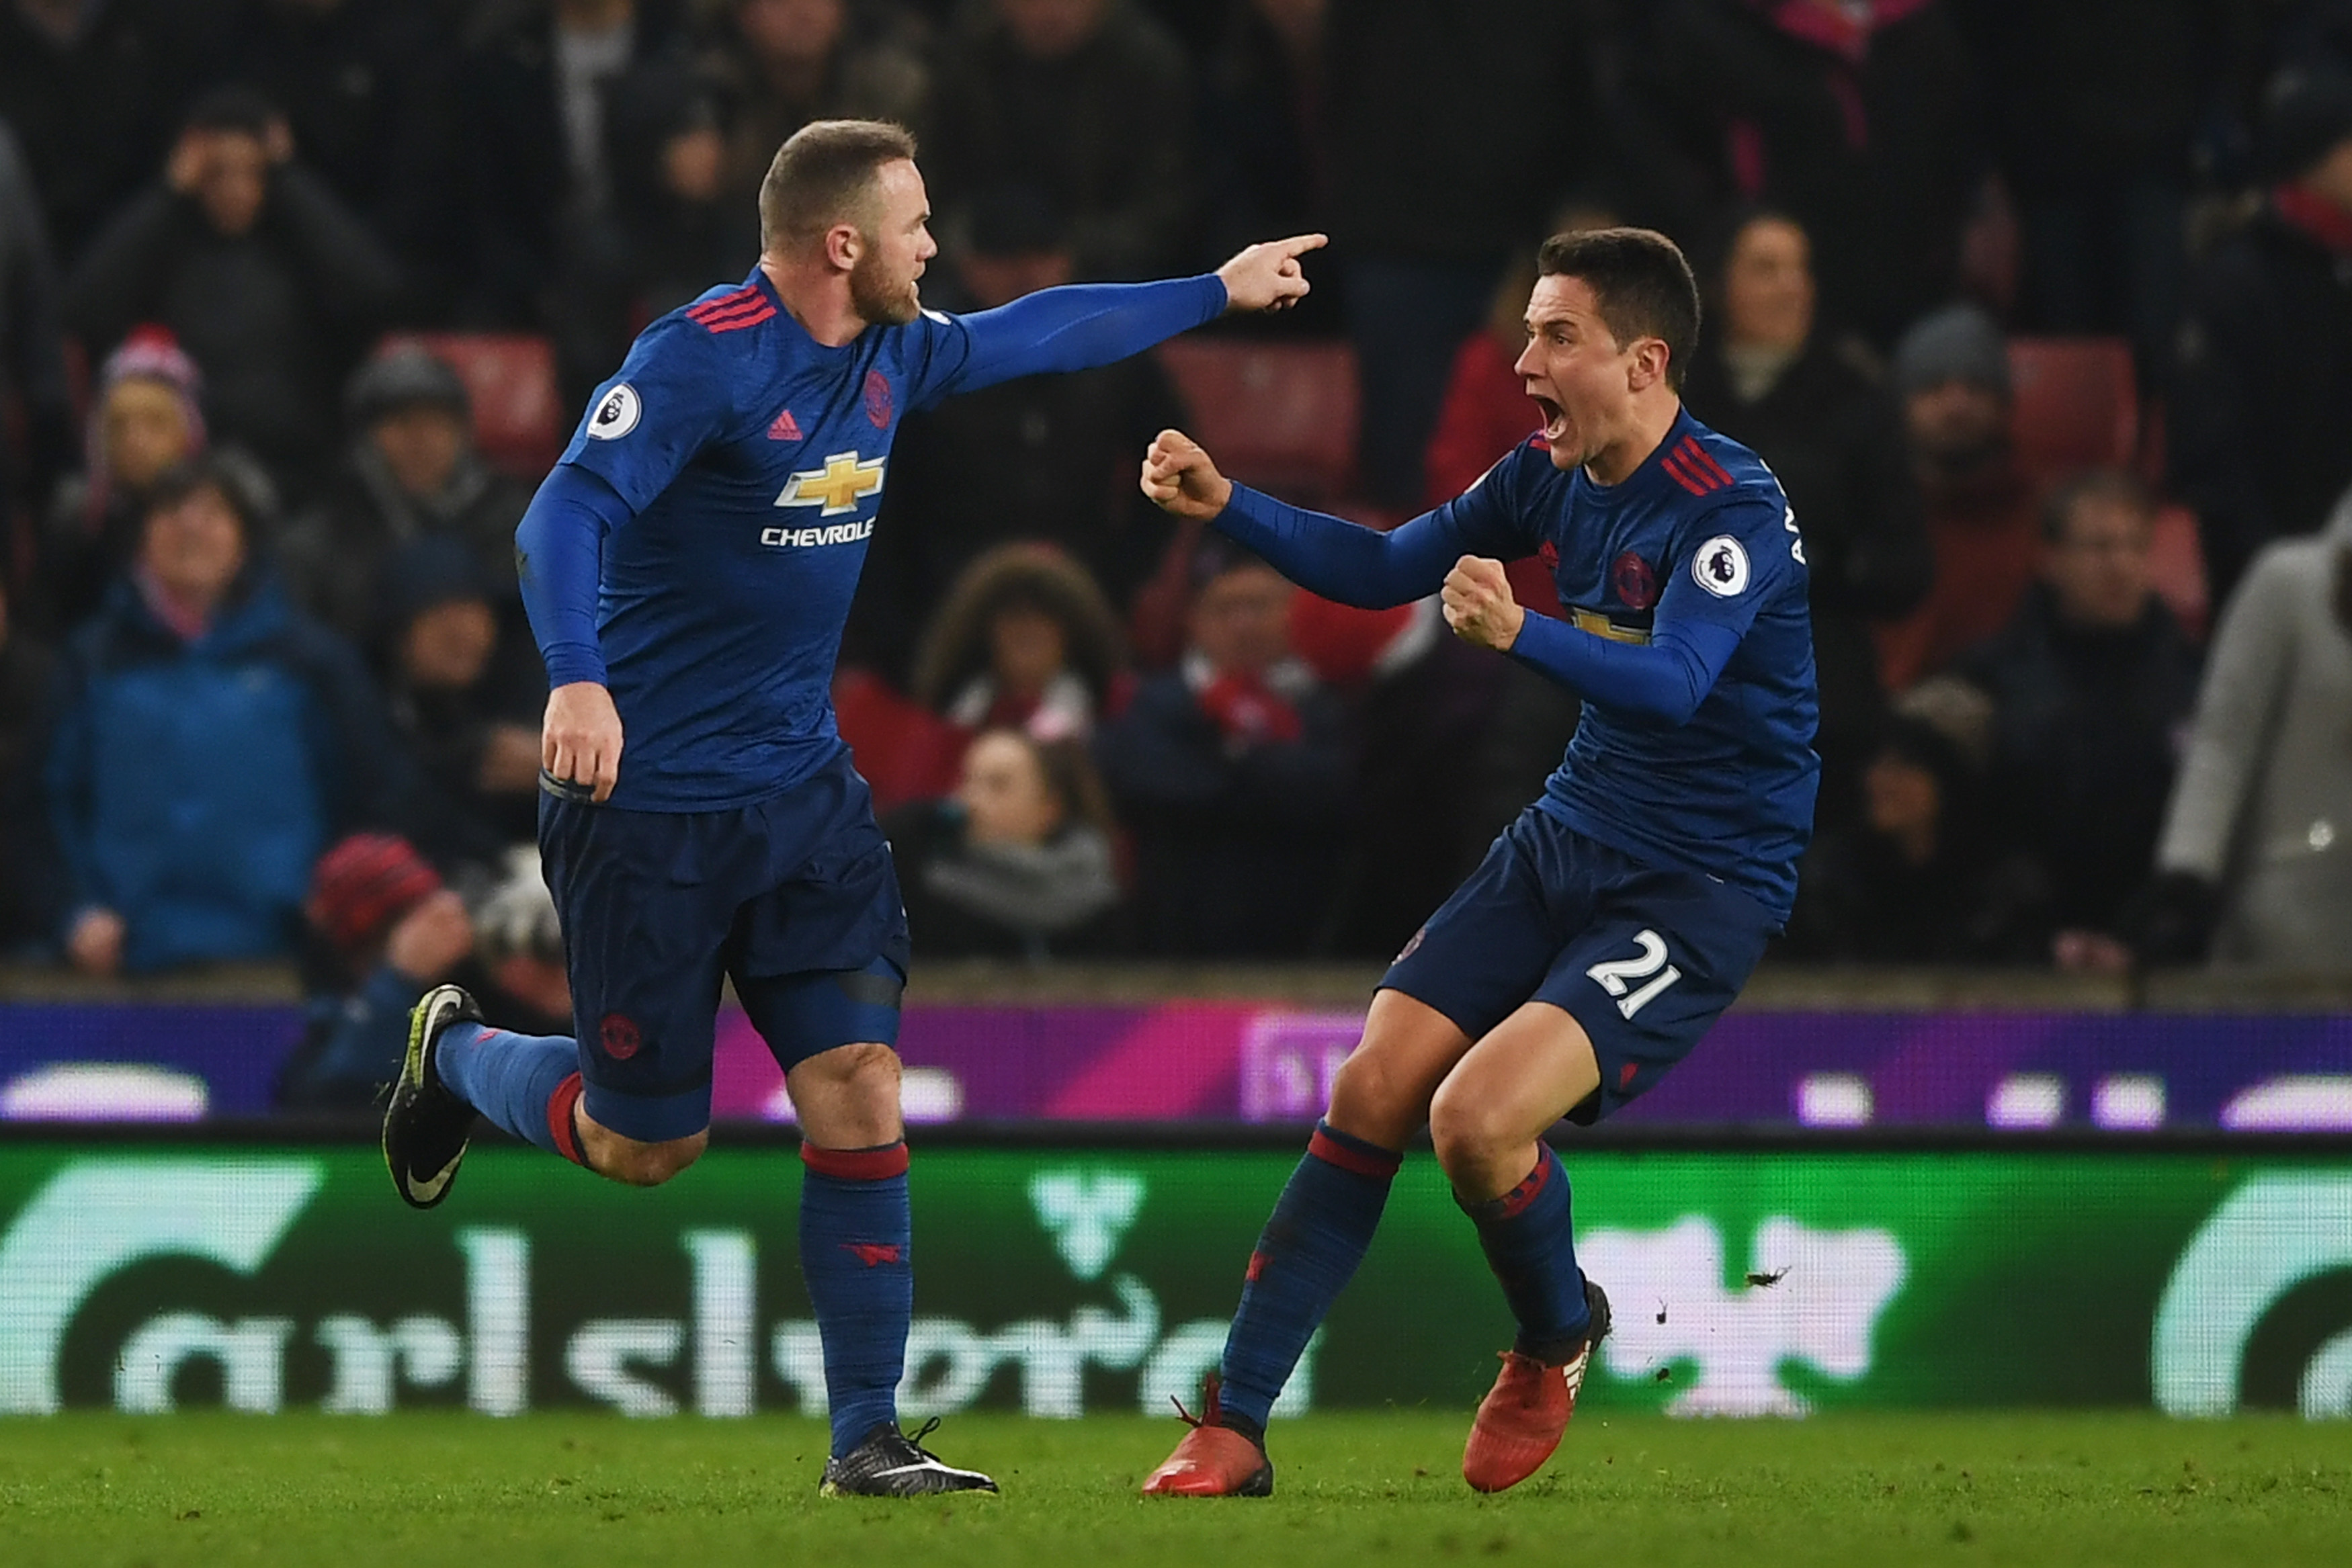 Stoke 1-1 Manchester United player ratings: Wayne Rooney makes history with stunning equaliser